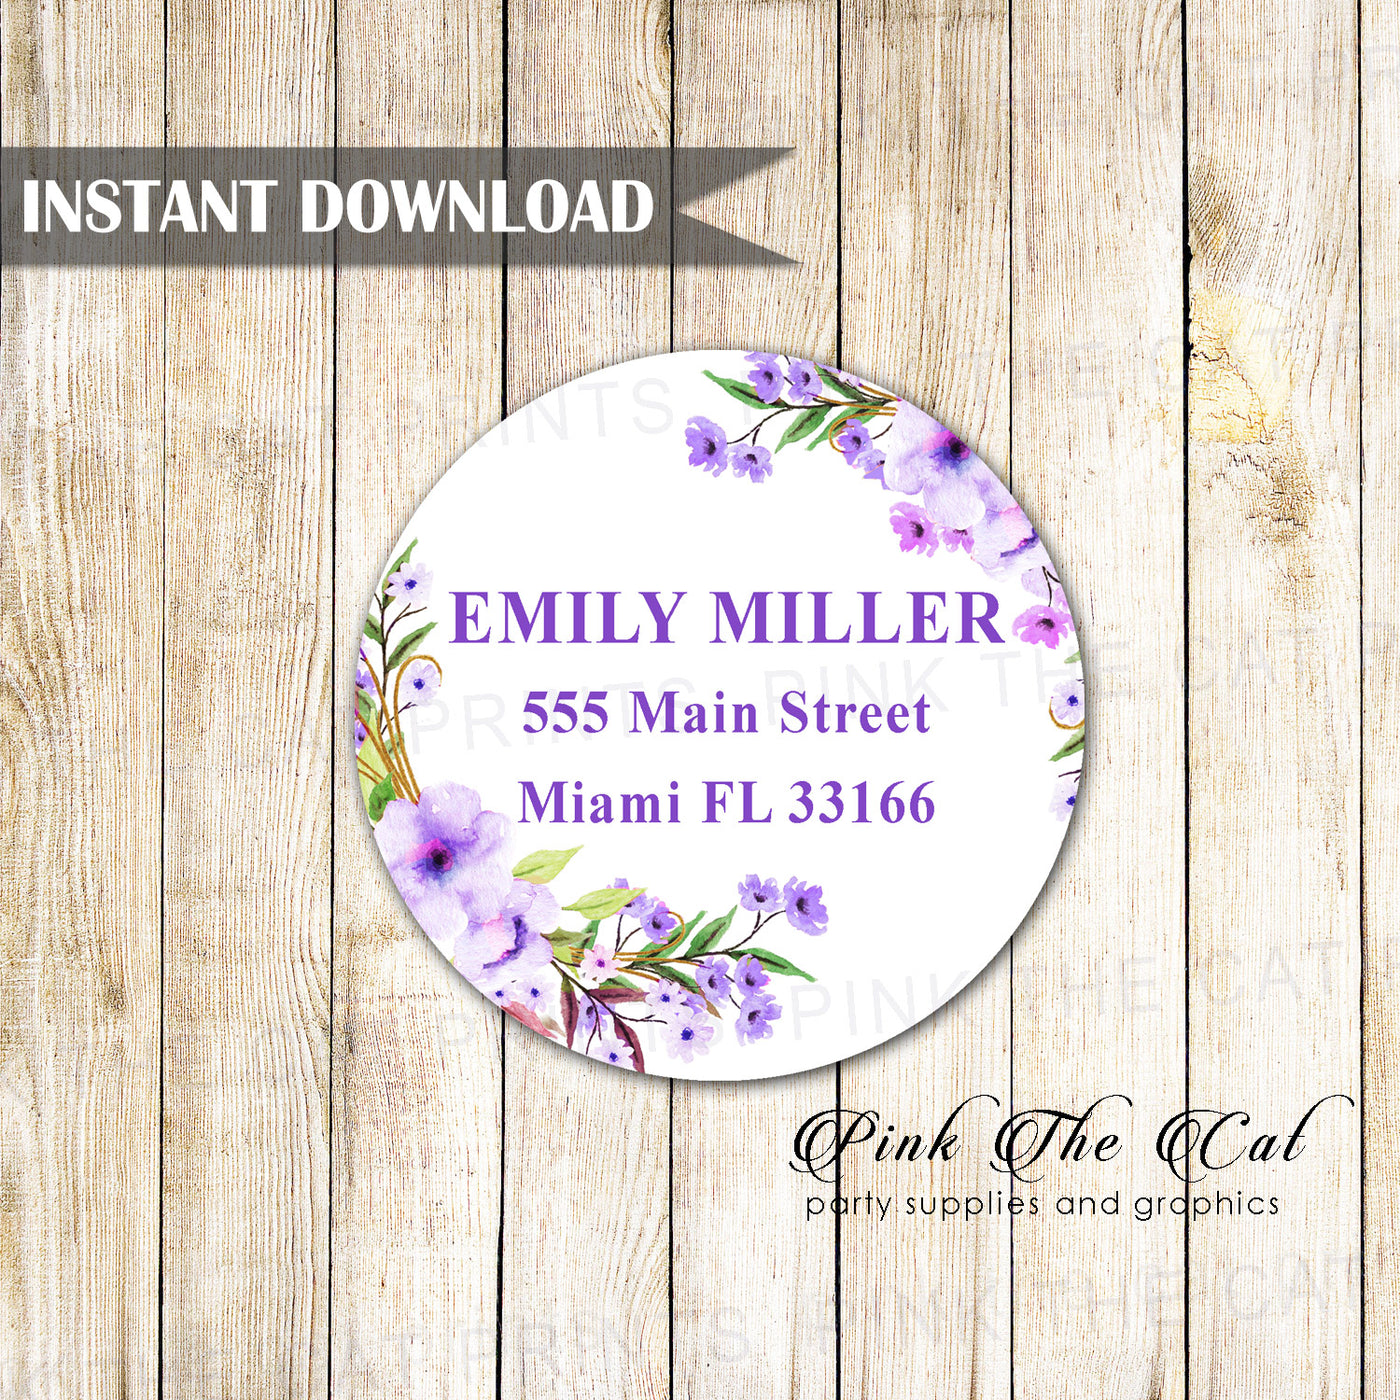 graphic about Printable Address Labels Wedding referred to as Boho protect label boho pink floral birthday marriage printable